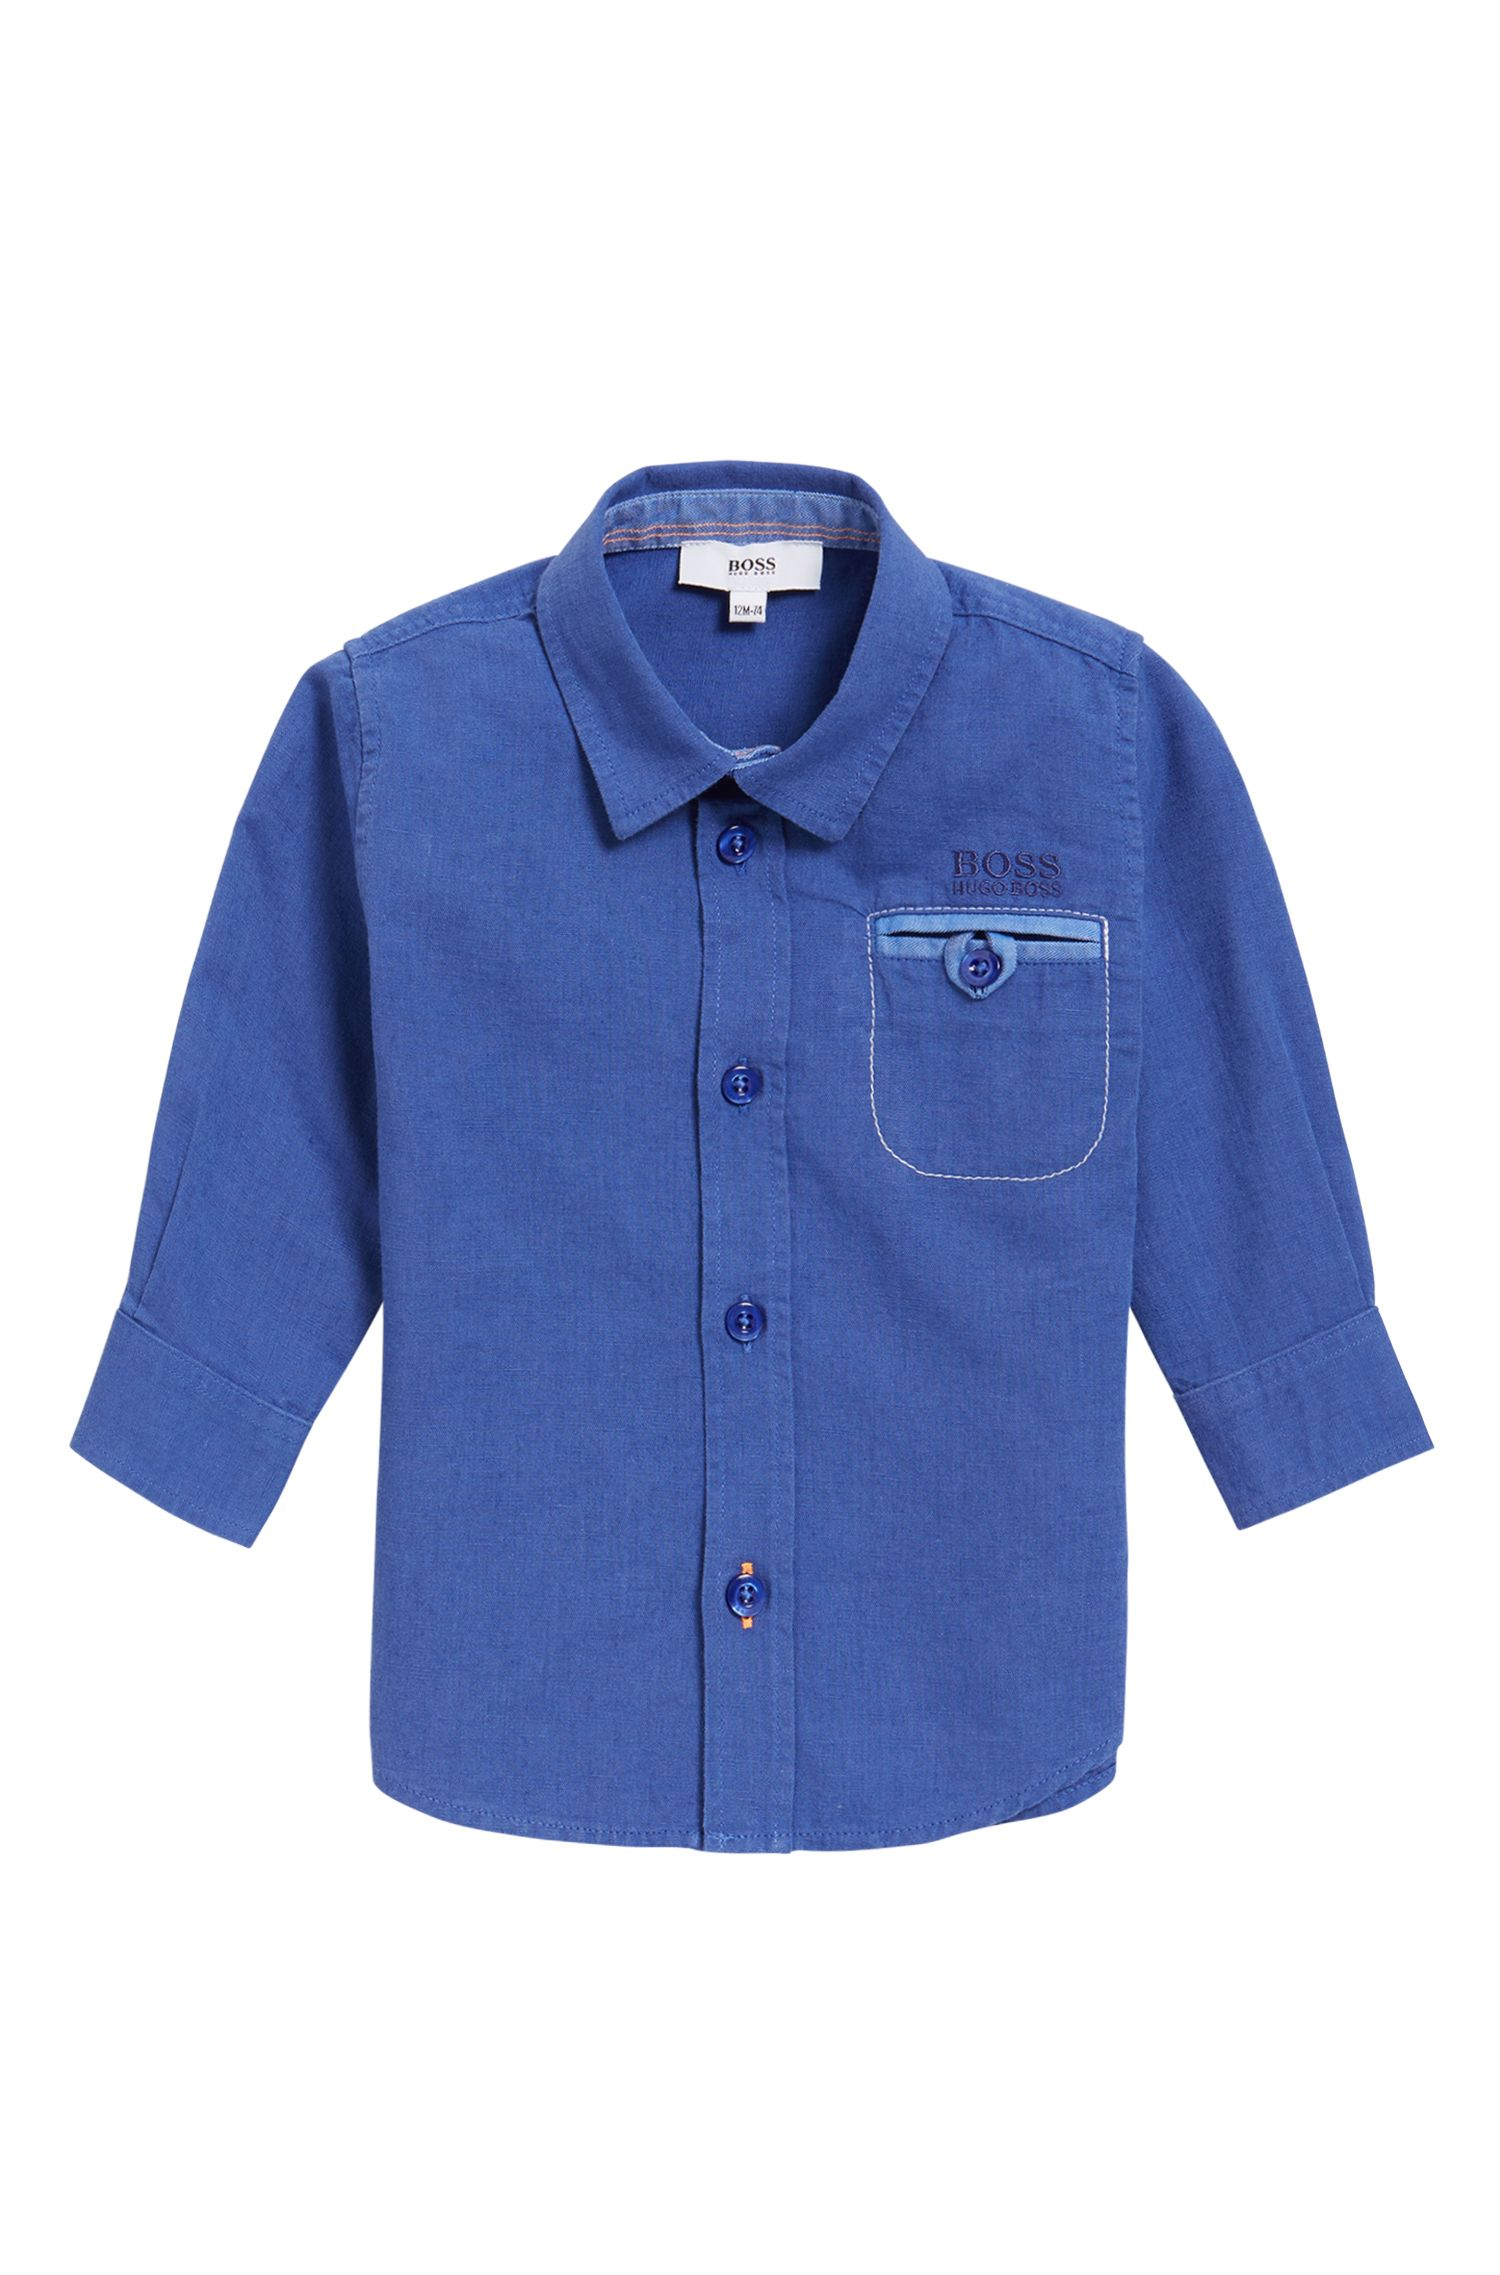 Kids-Hemd mit Stickdetail, Blau